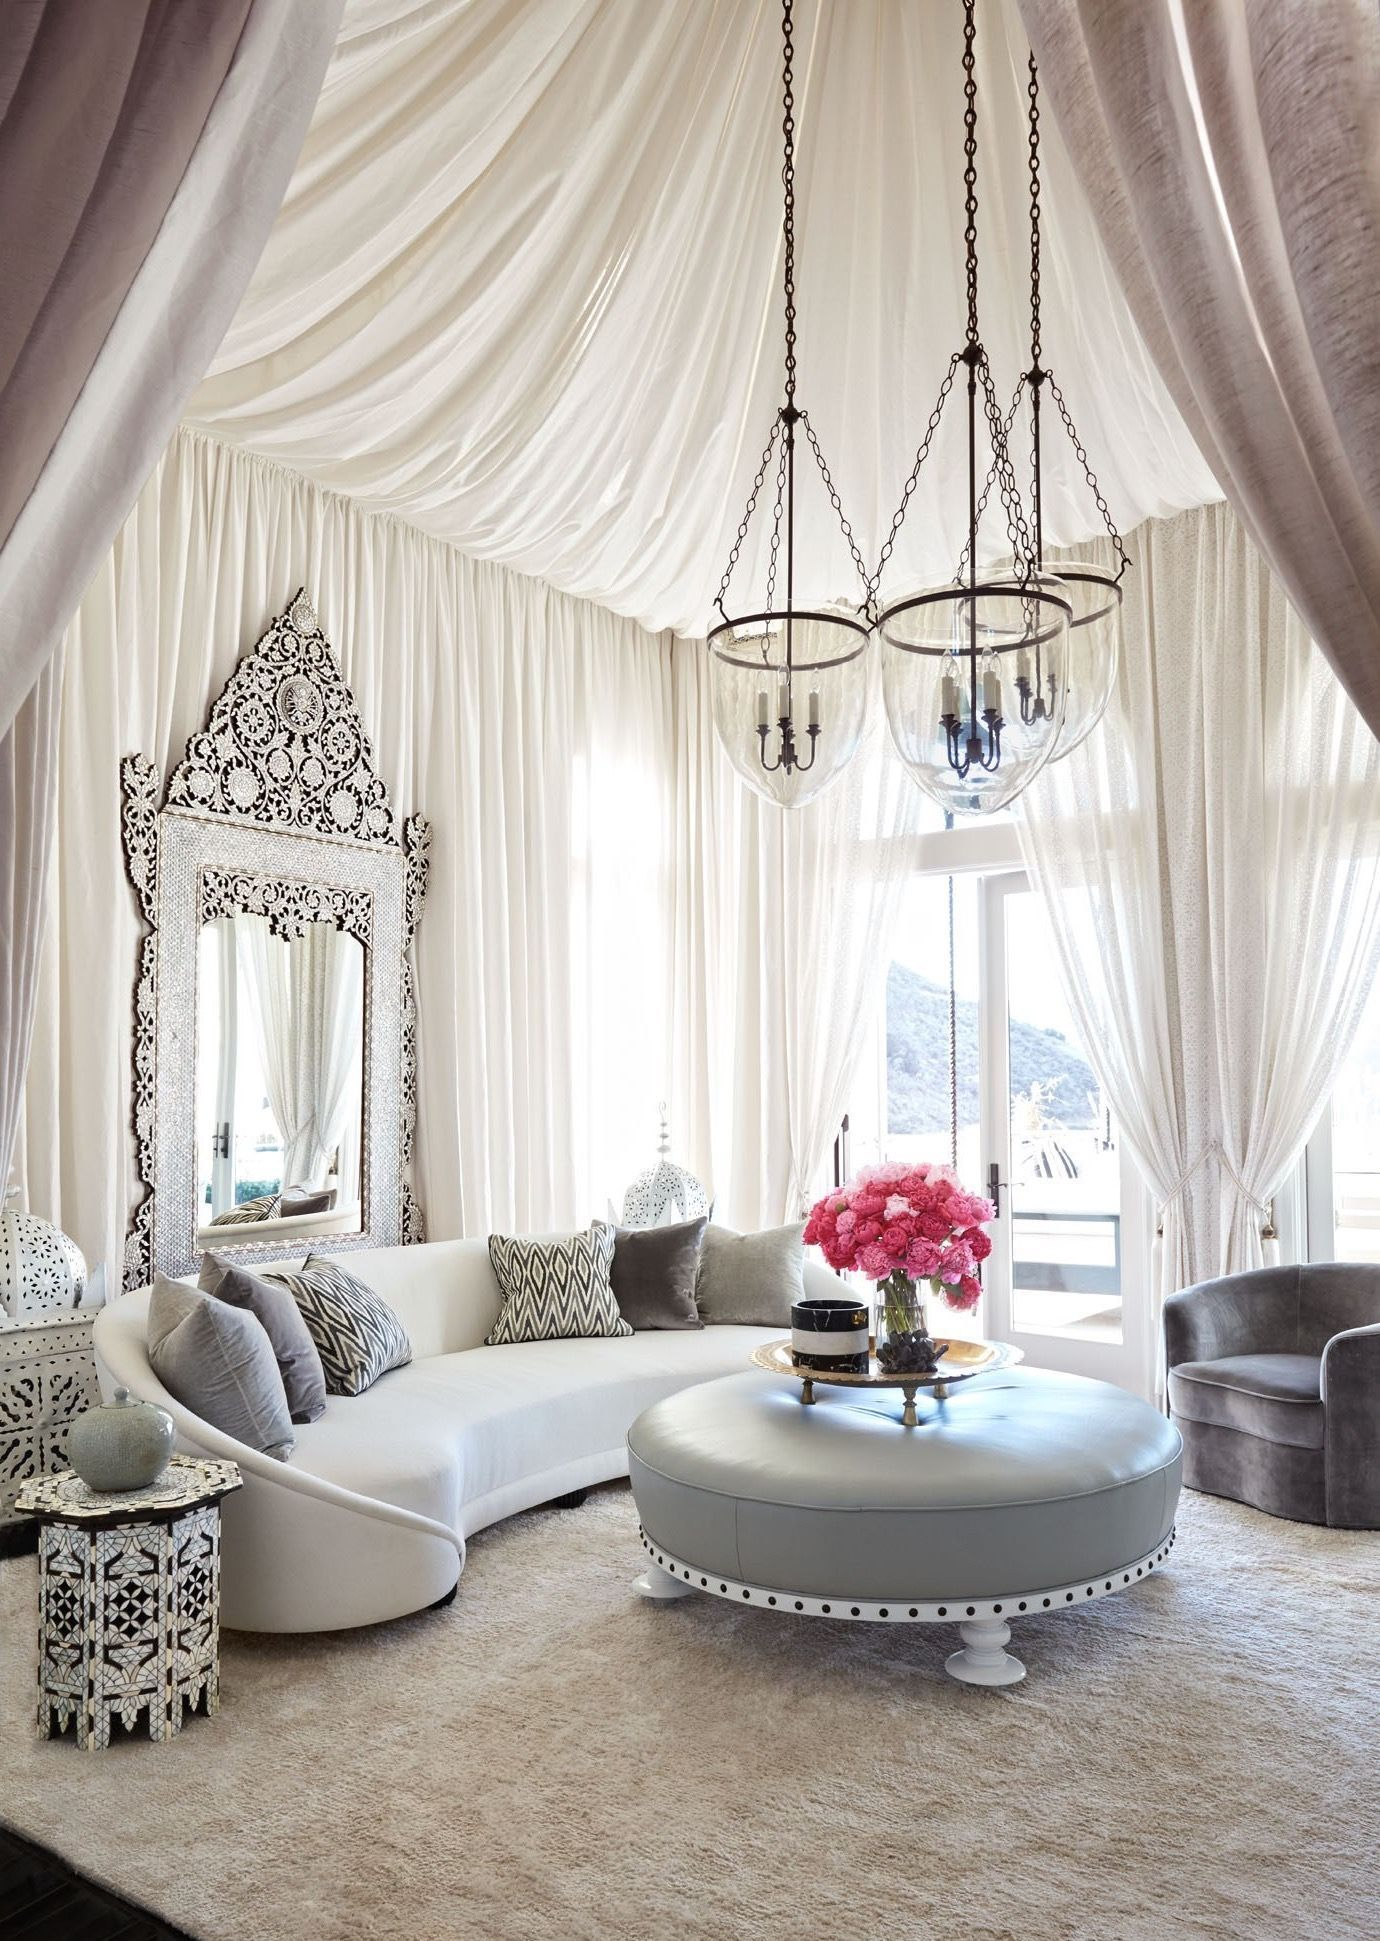 18 Magical Moroccan Interior Design That Will Leave You Speechles ...